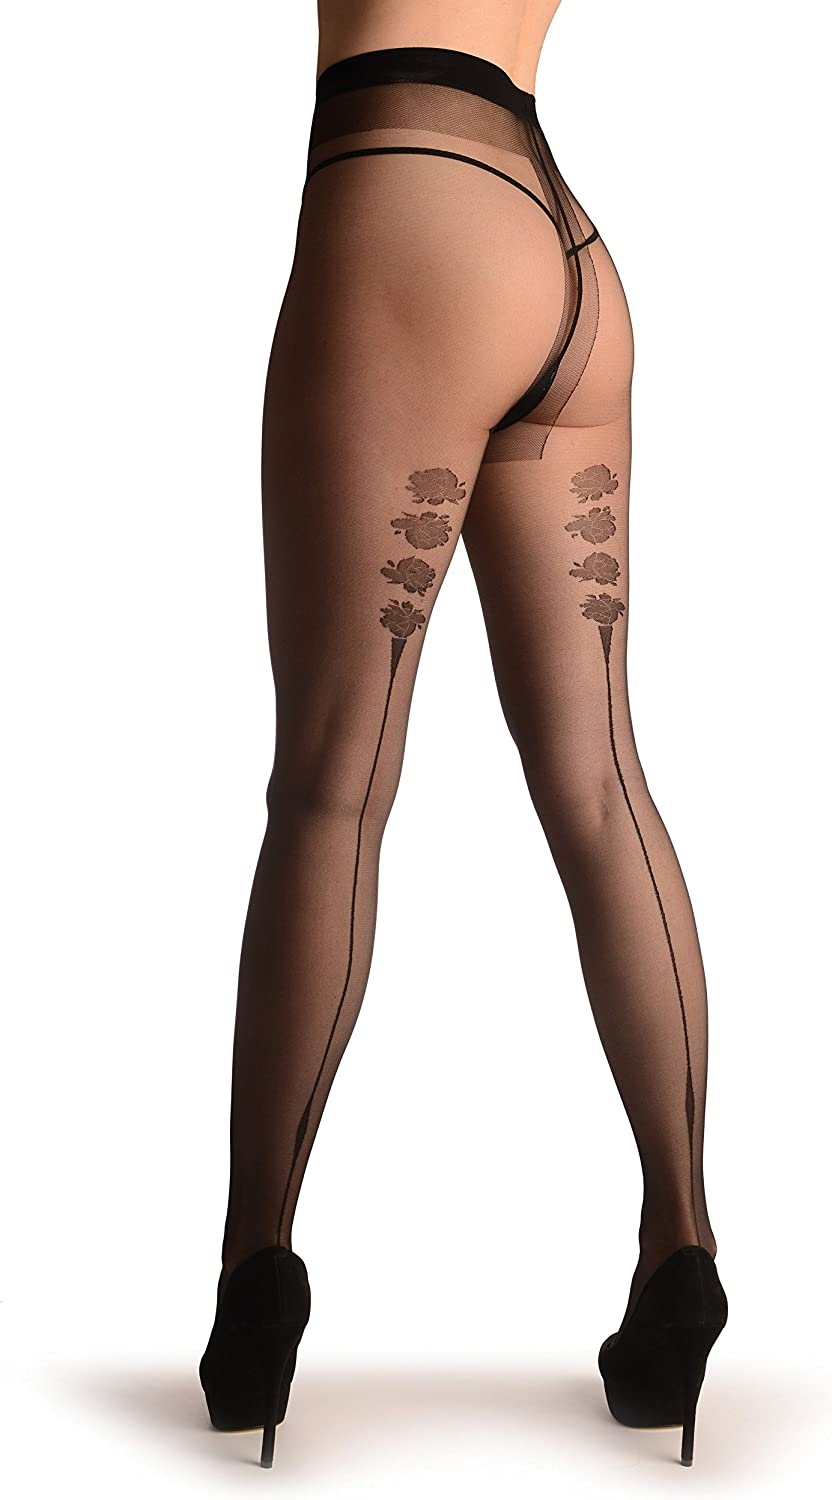 Black With Seam & Roses - Pantyhose (Tights)